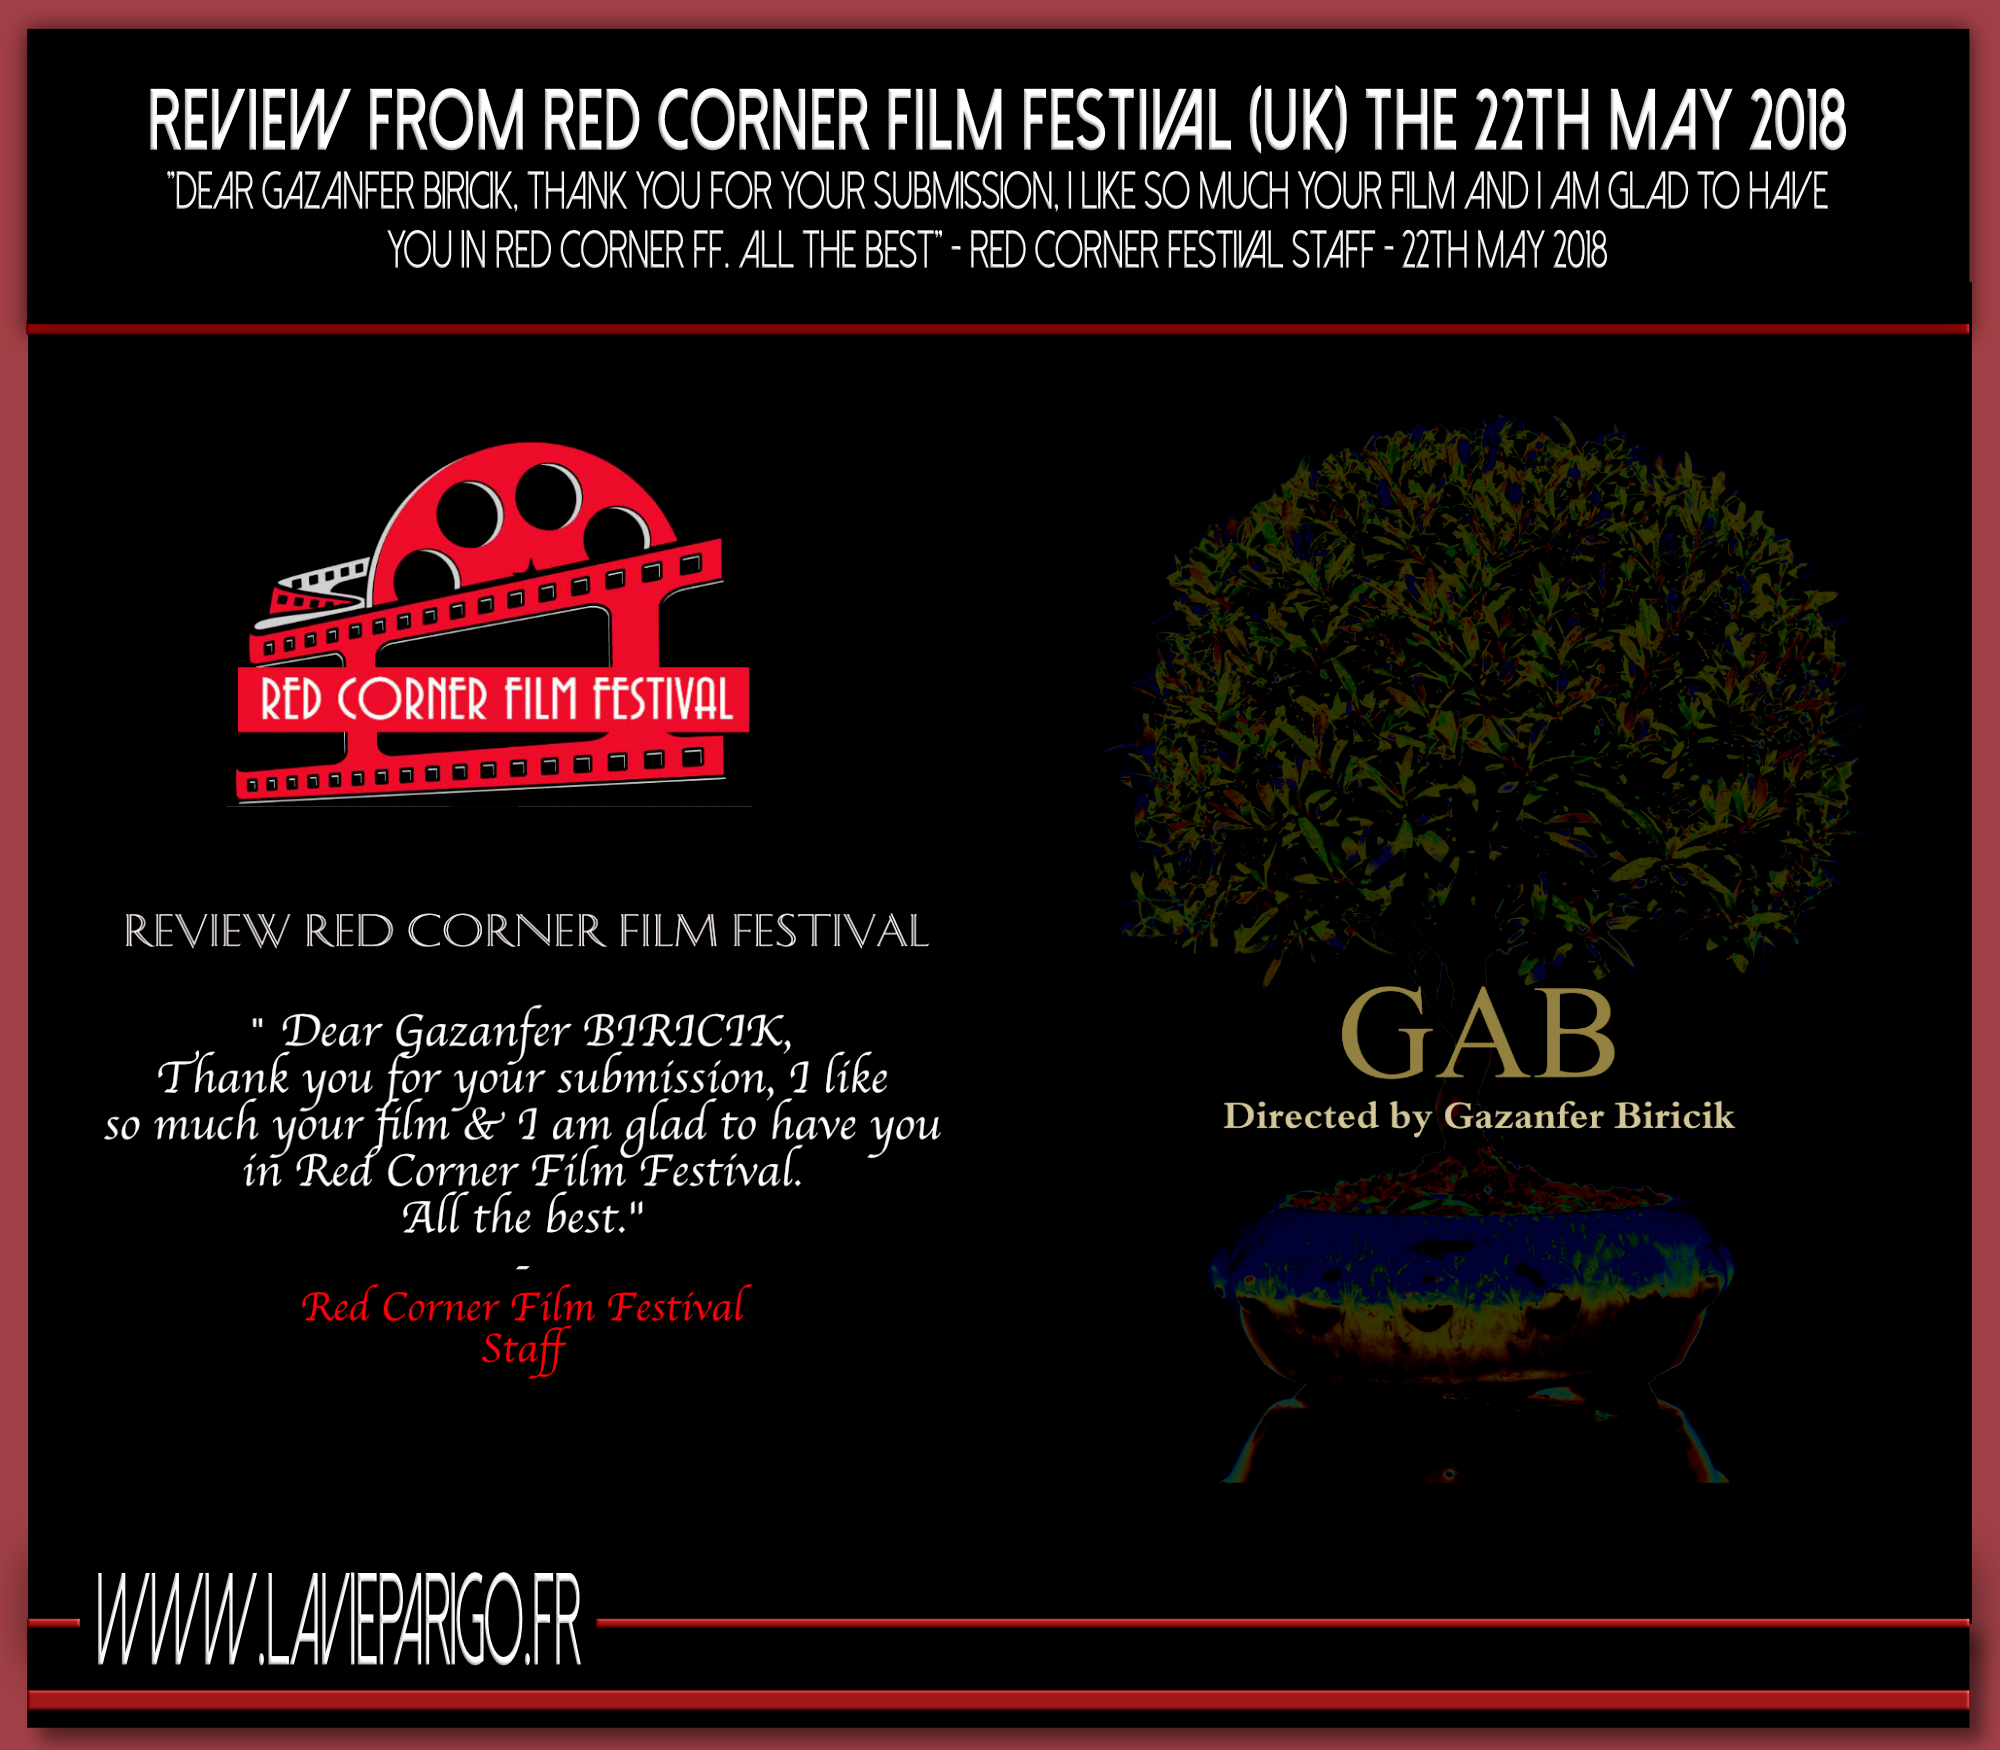 Review from Red corner film festival (UK) the 22th may 2018